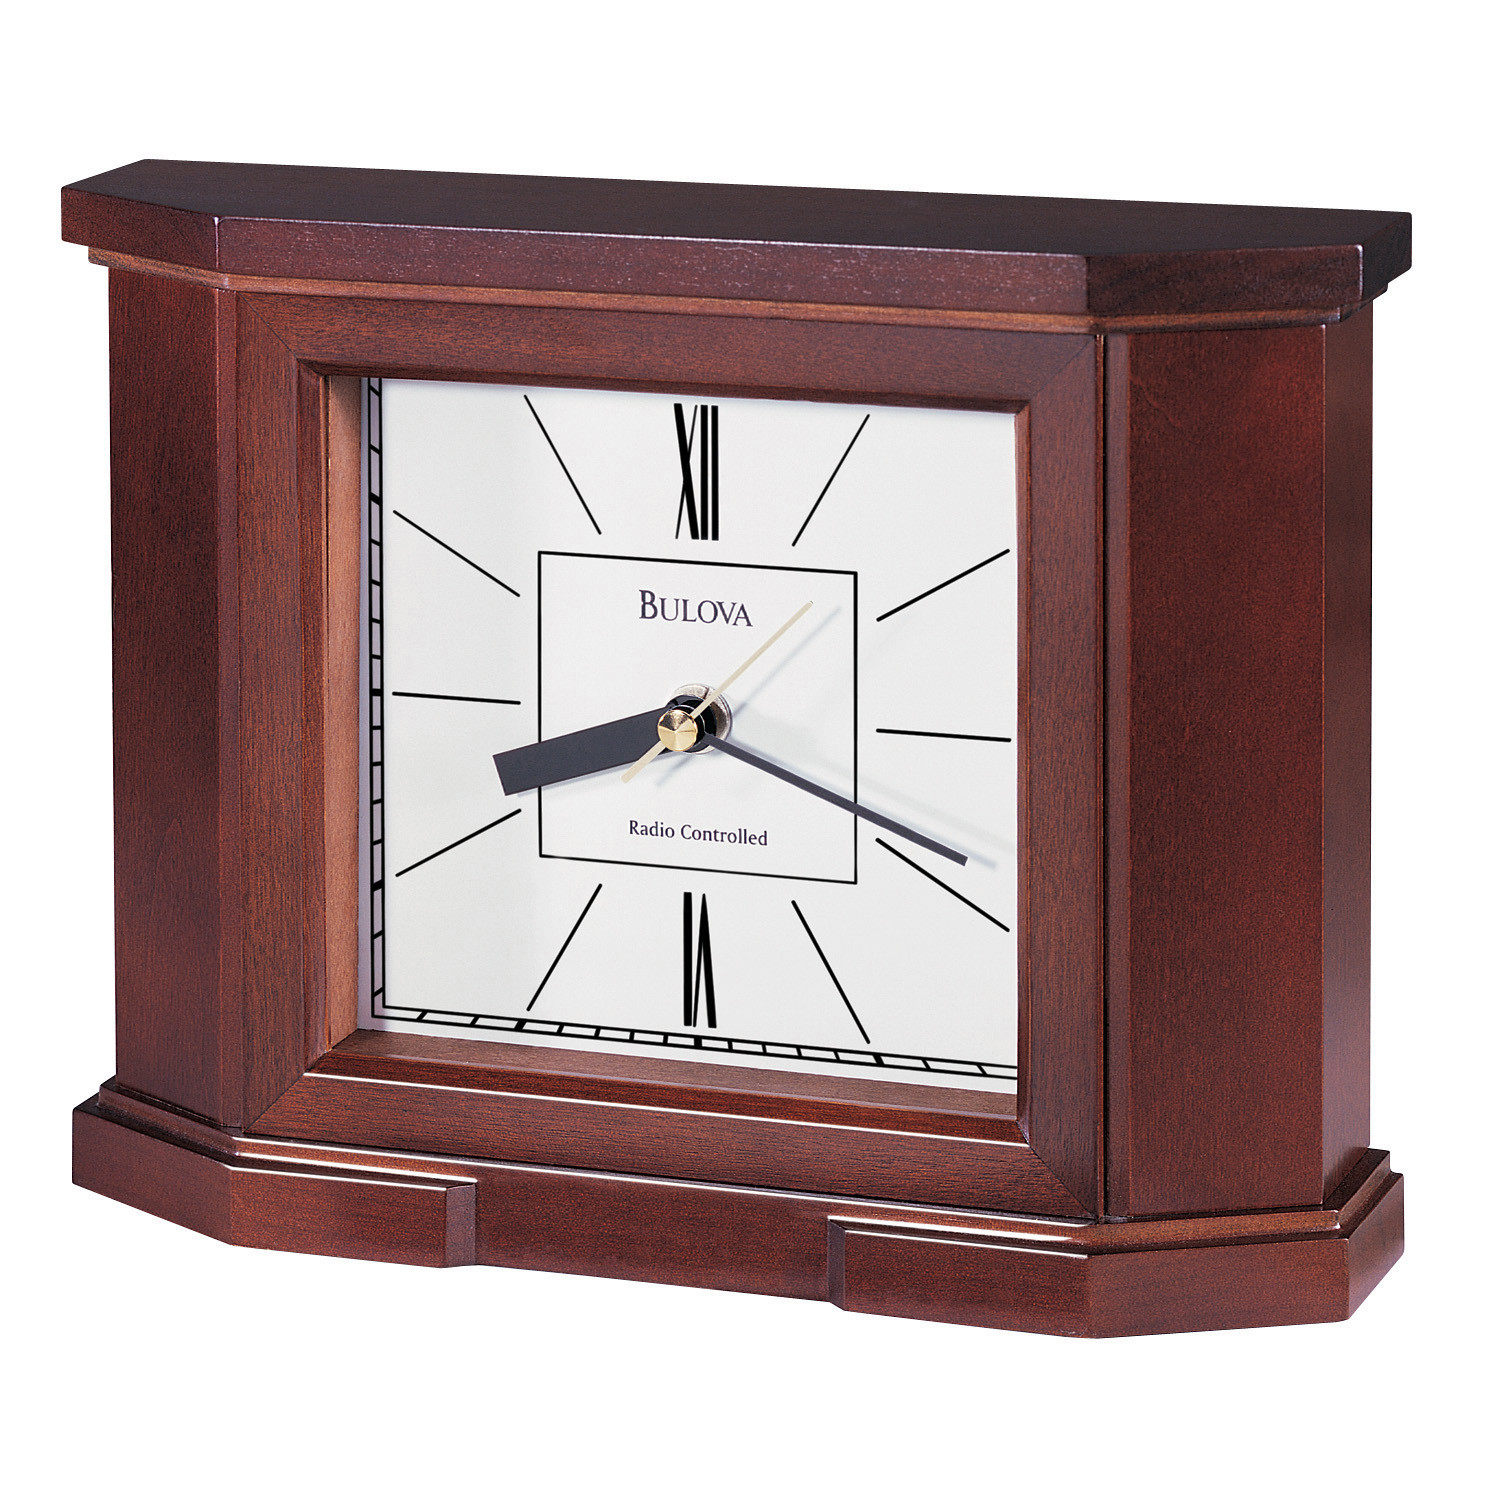 Small Mantel Clocks | Bulova Mantel Clock | Modern Mantel Clocks